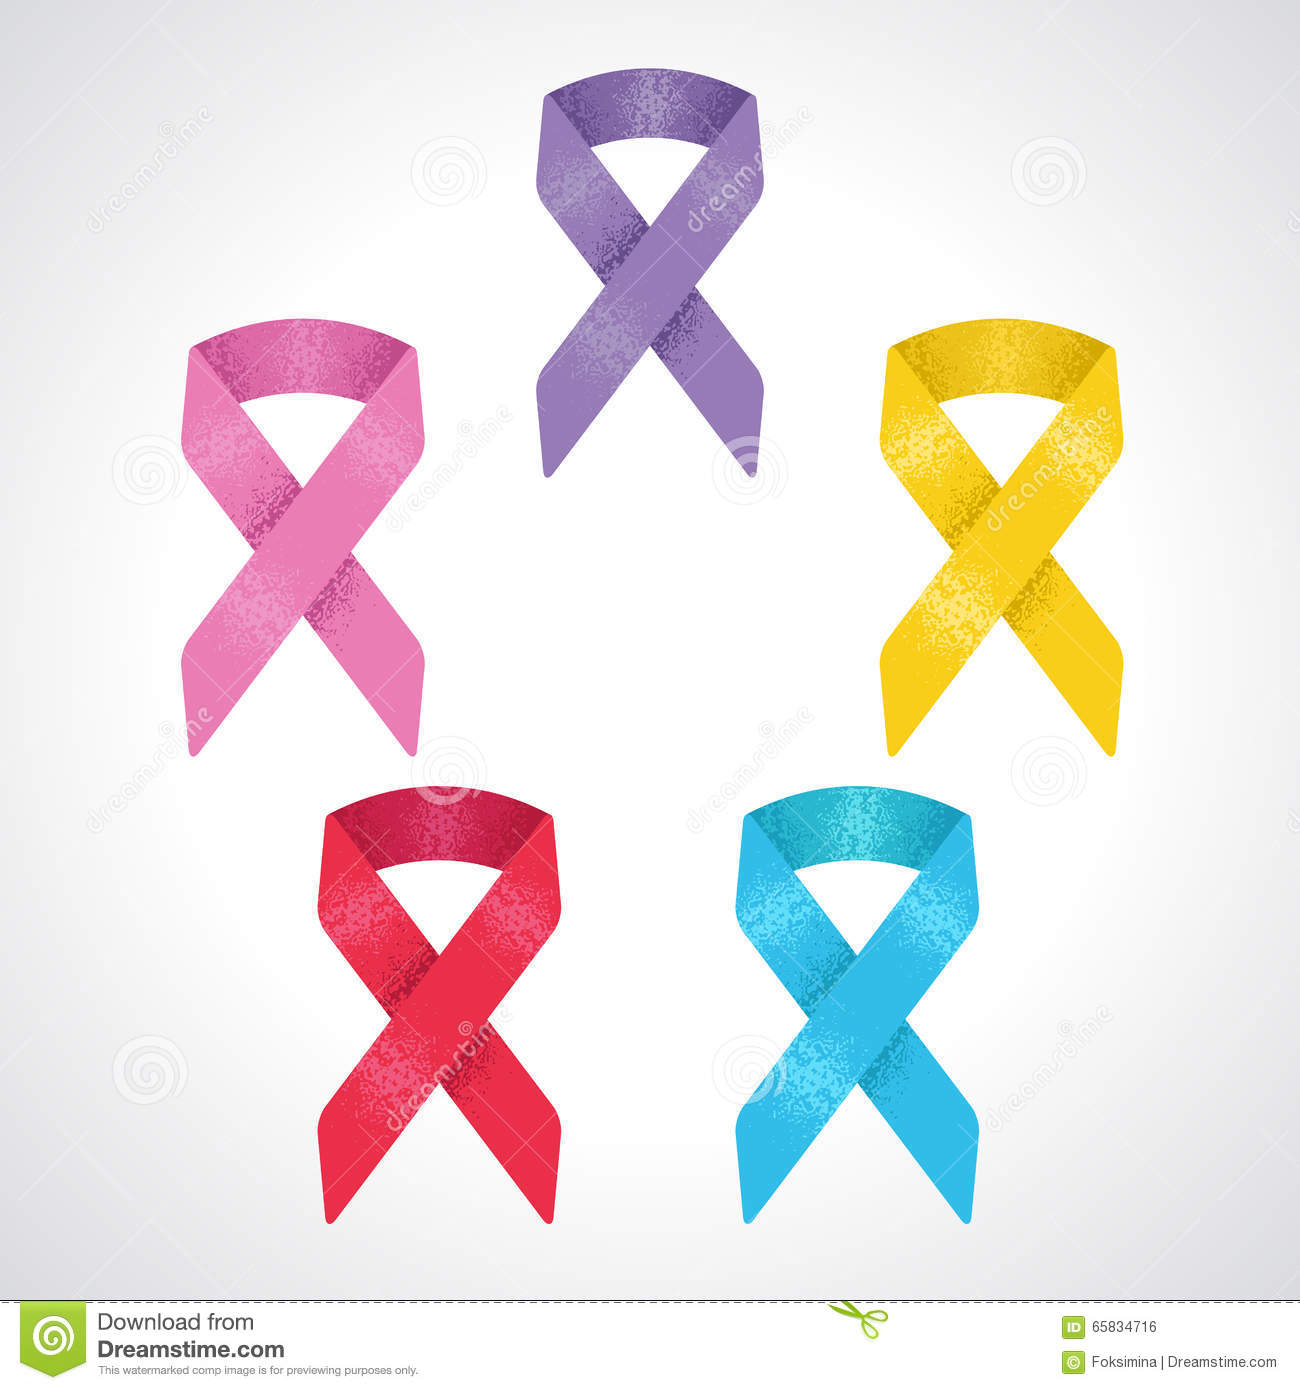 Set of 5 awareness ribbon symbol of world cancer day breast set of 5 awareness ribbon symbol of world cancer day breast cancer children cancer prostate cancer world aids day biocorpaavc